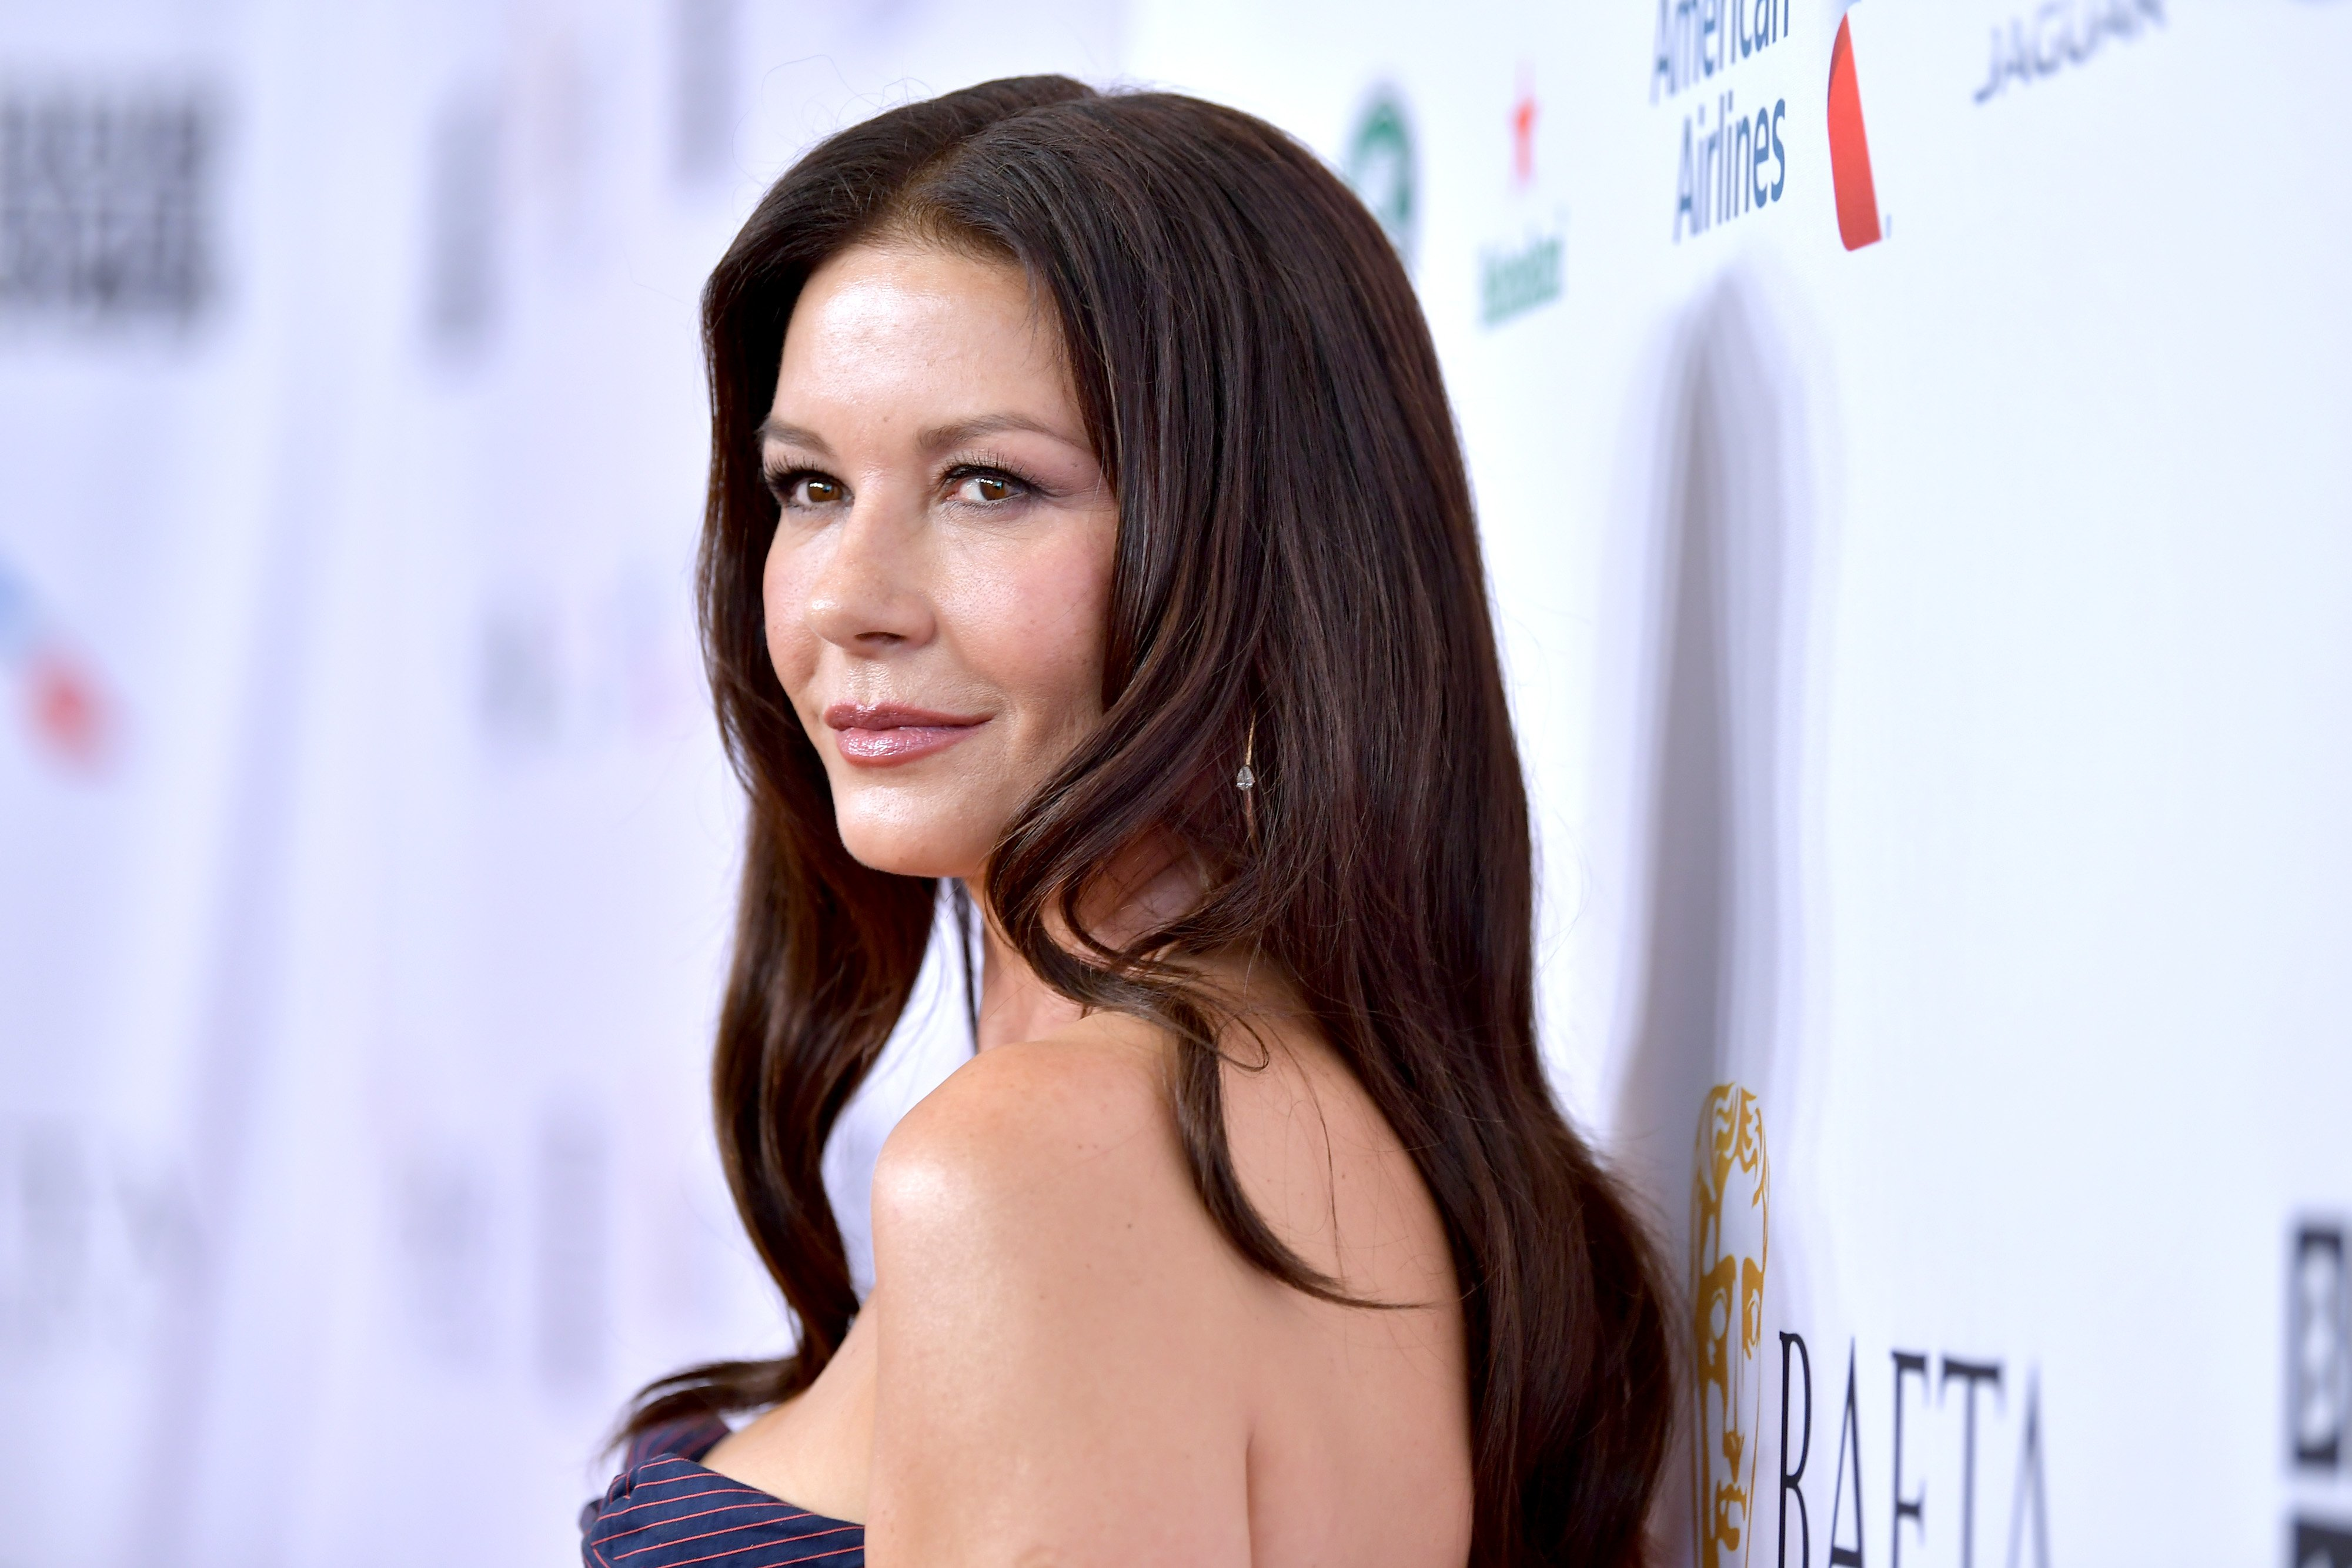 Catherine Zeta-Jones attends the BAFTA TV Tea Party in Beverly Hills, California on September 21, 2019 | Photo: Getty images